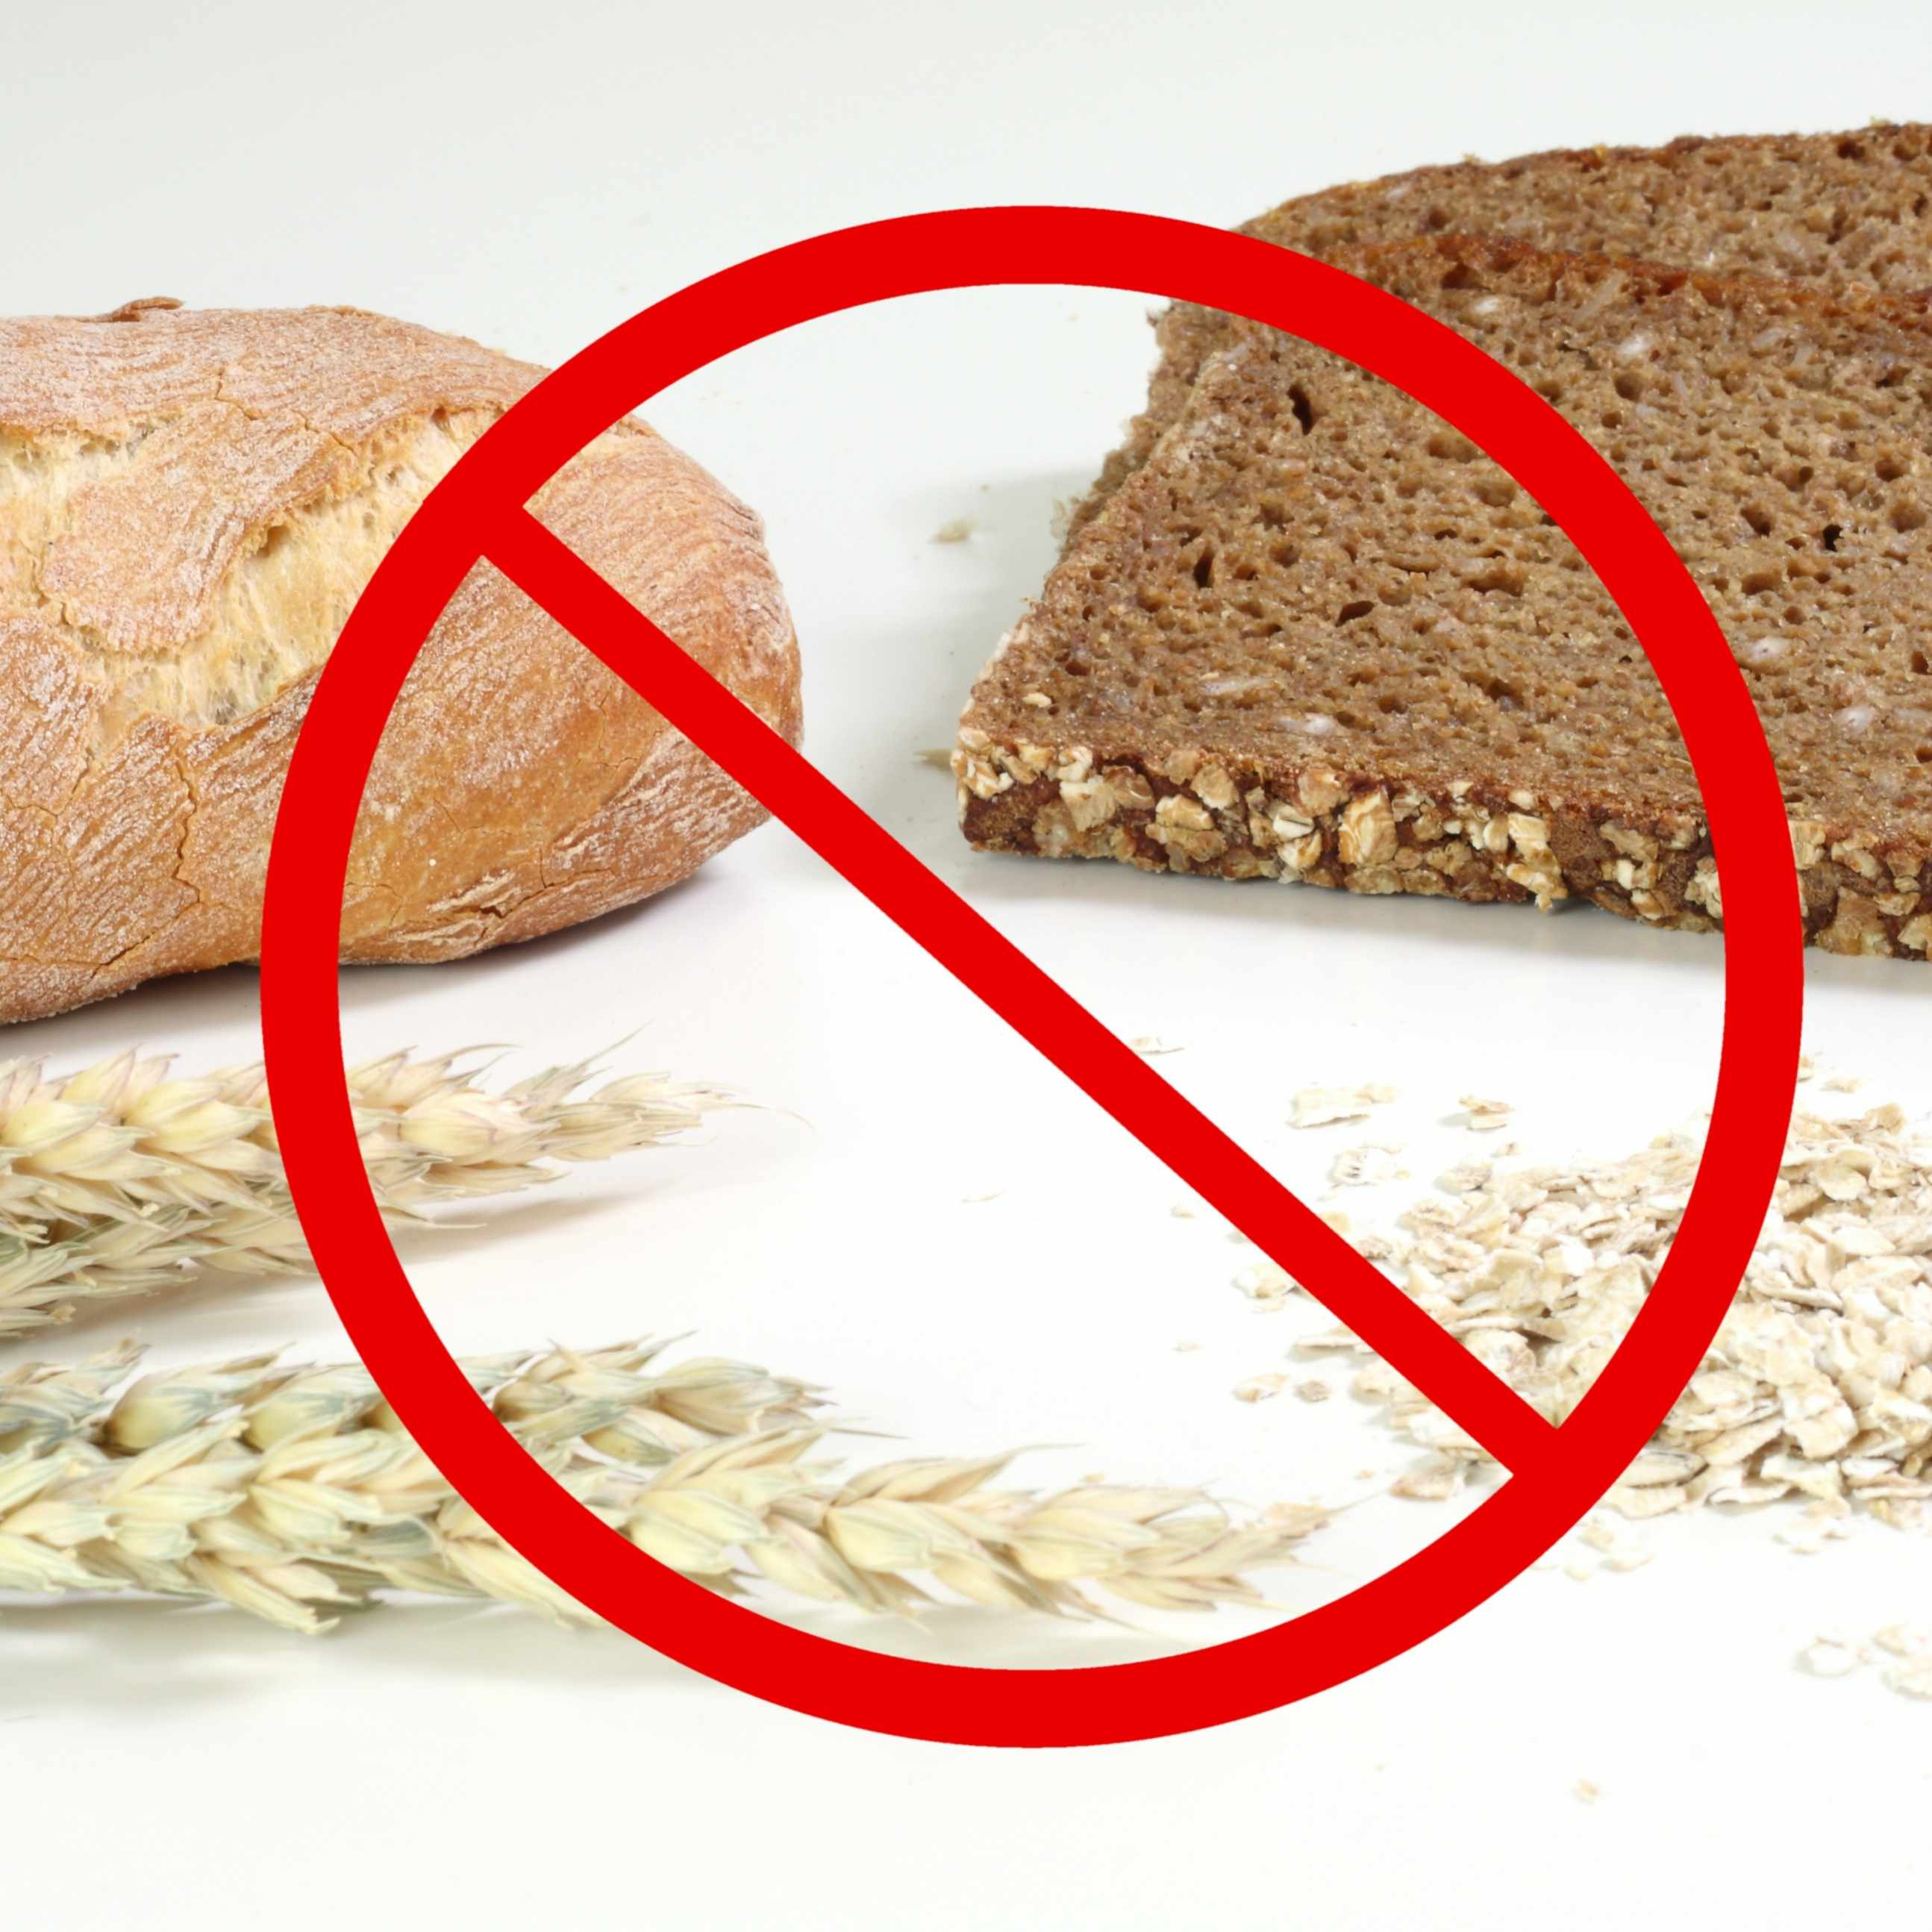 The no symbol surrounding a grouping of wheat grain, cereal and bread